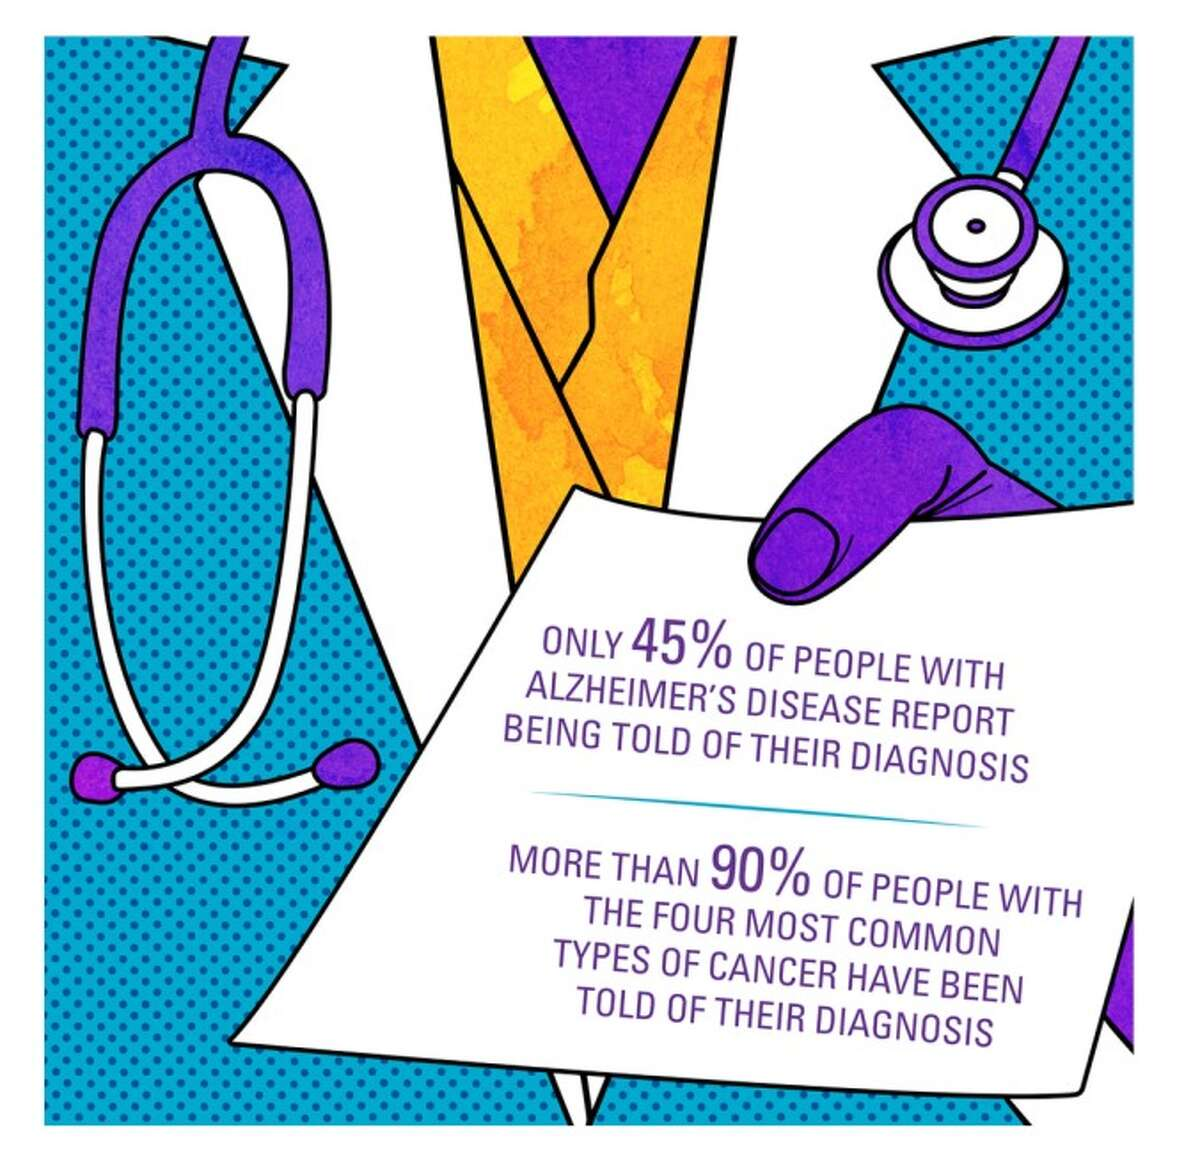 The Alzheimer's Association shows the facts about the disease.